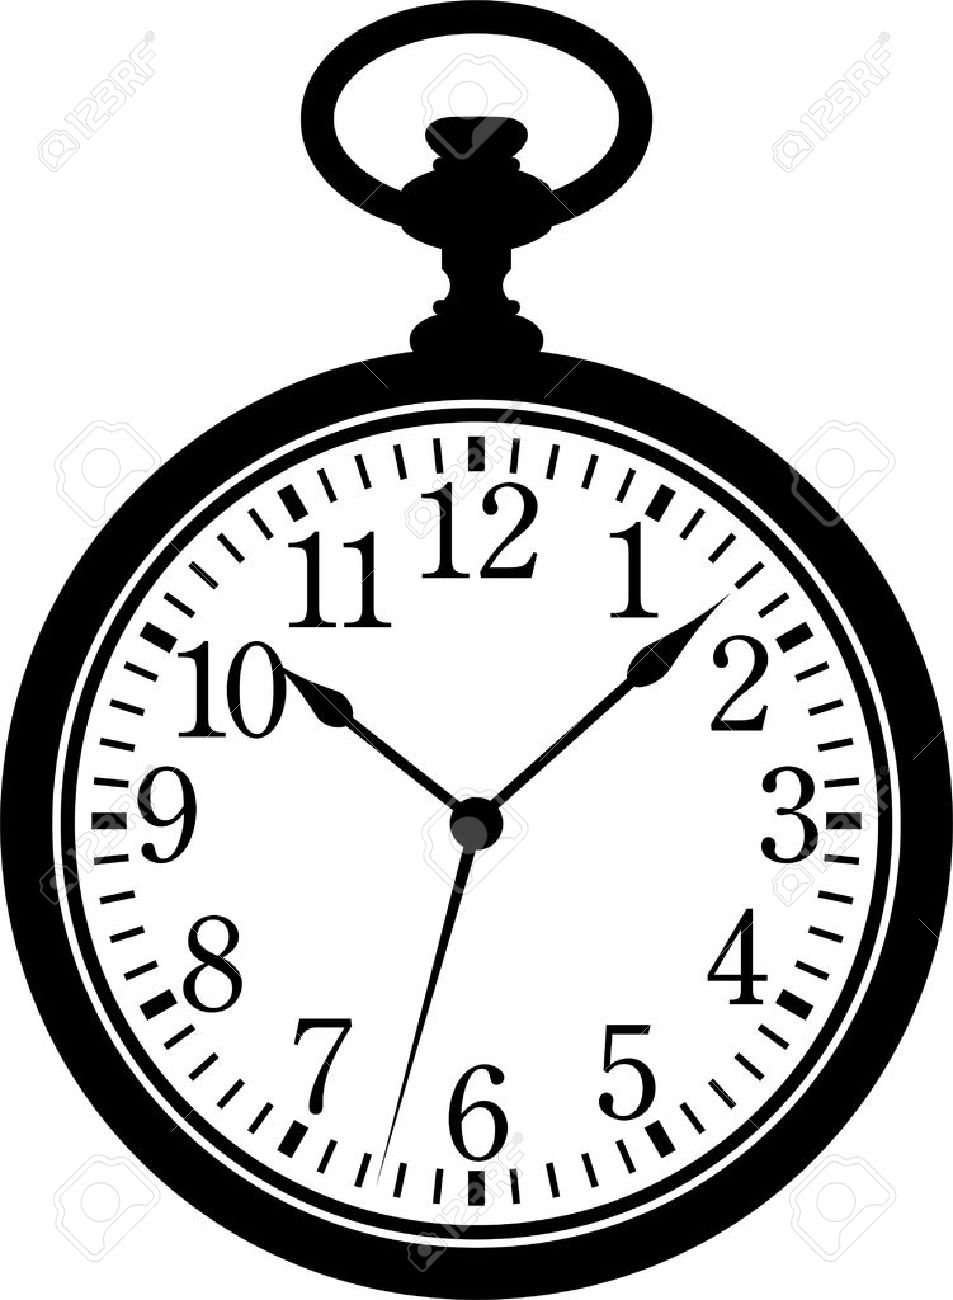 stopwatch clipart black and white. silhouette black on white stock vector 7833153 stopwatch clipart and